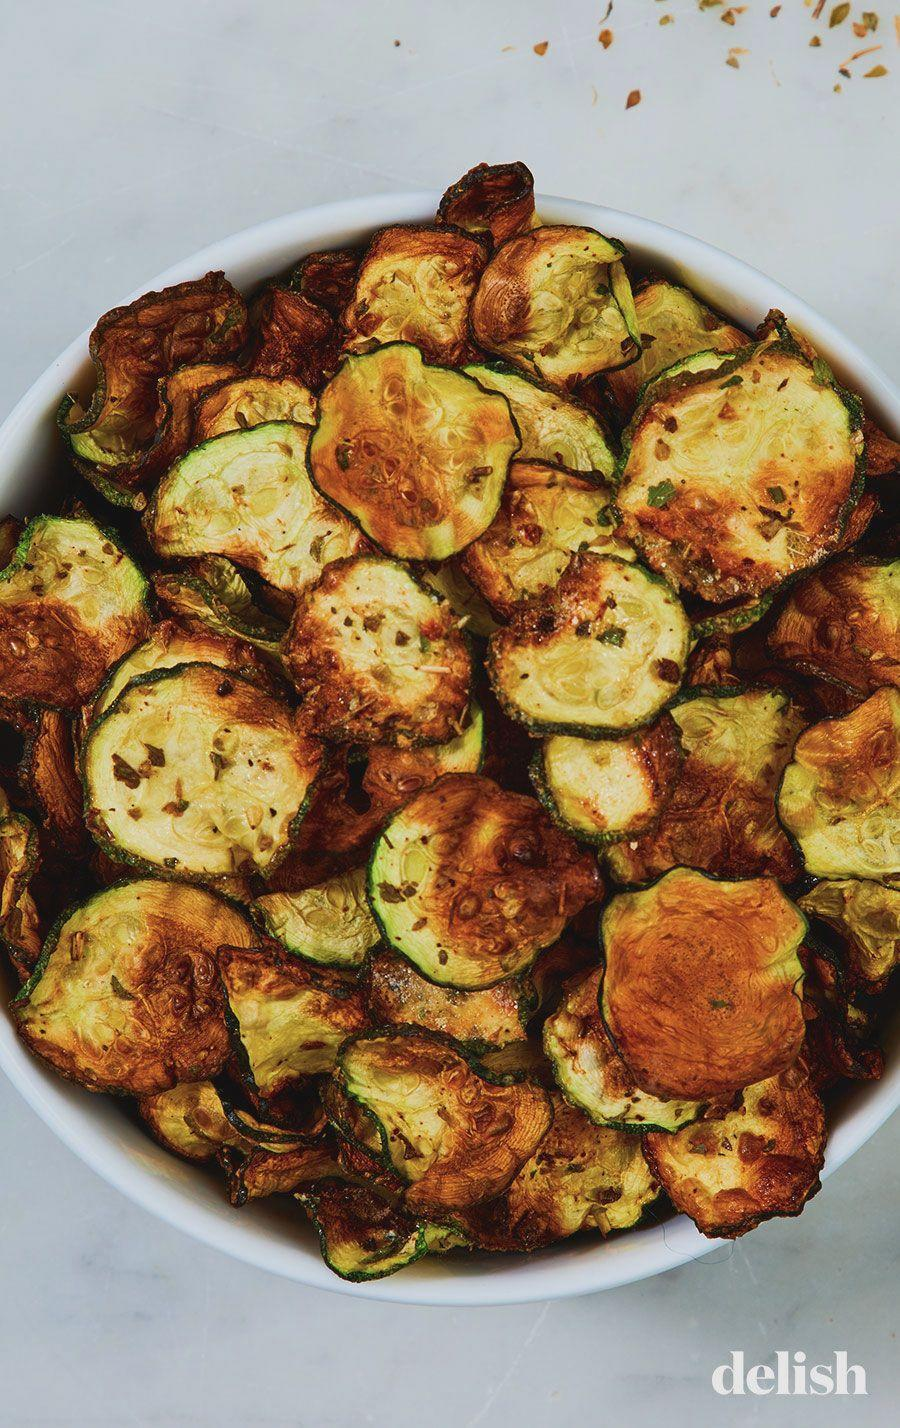 """<p>Like Doritos, but without all the post-snacking guilt. </p><p>Get the recipe from <a href=""""https://www.delish.com/cooking/recipe-ideas/a22344312/cool-ranch-zucchini-chips/"""" rel=""""nofollow noopener"""" target=""""_blank"""" data-ylk=""""slk:Delish"""" class=""""link rapid-noclick-resp"""">Delish</a>.</p>"""